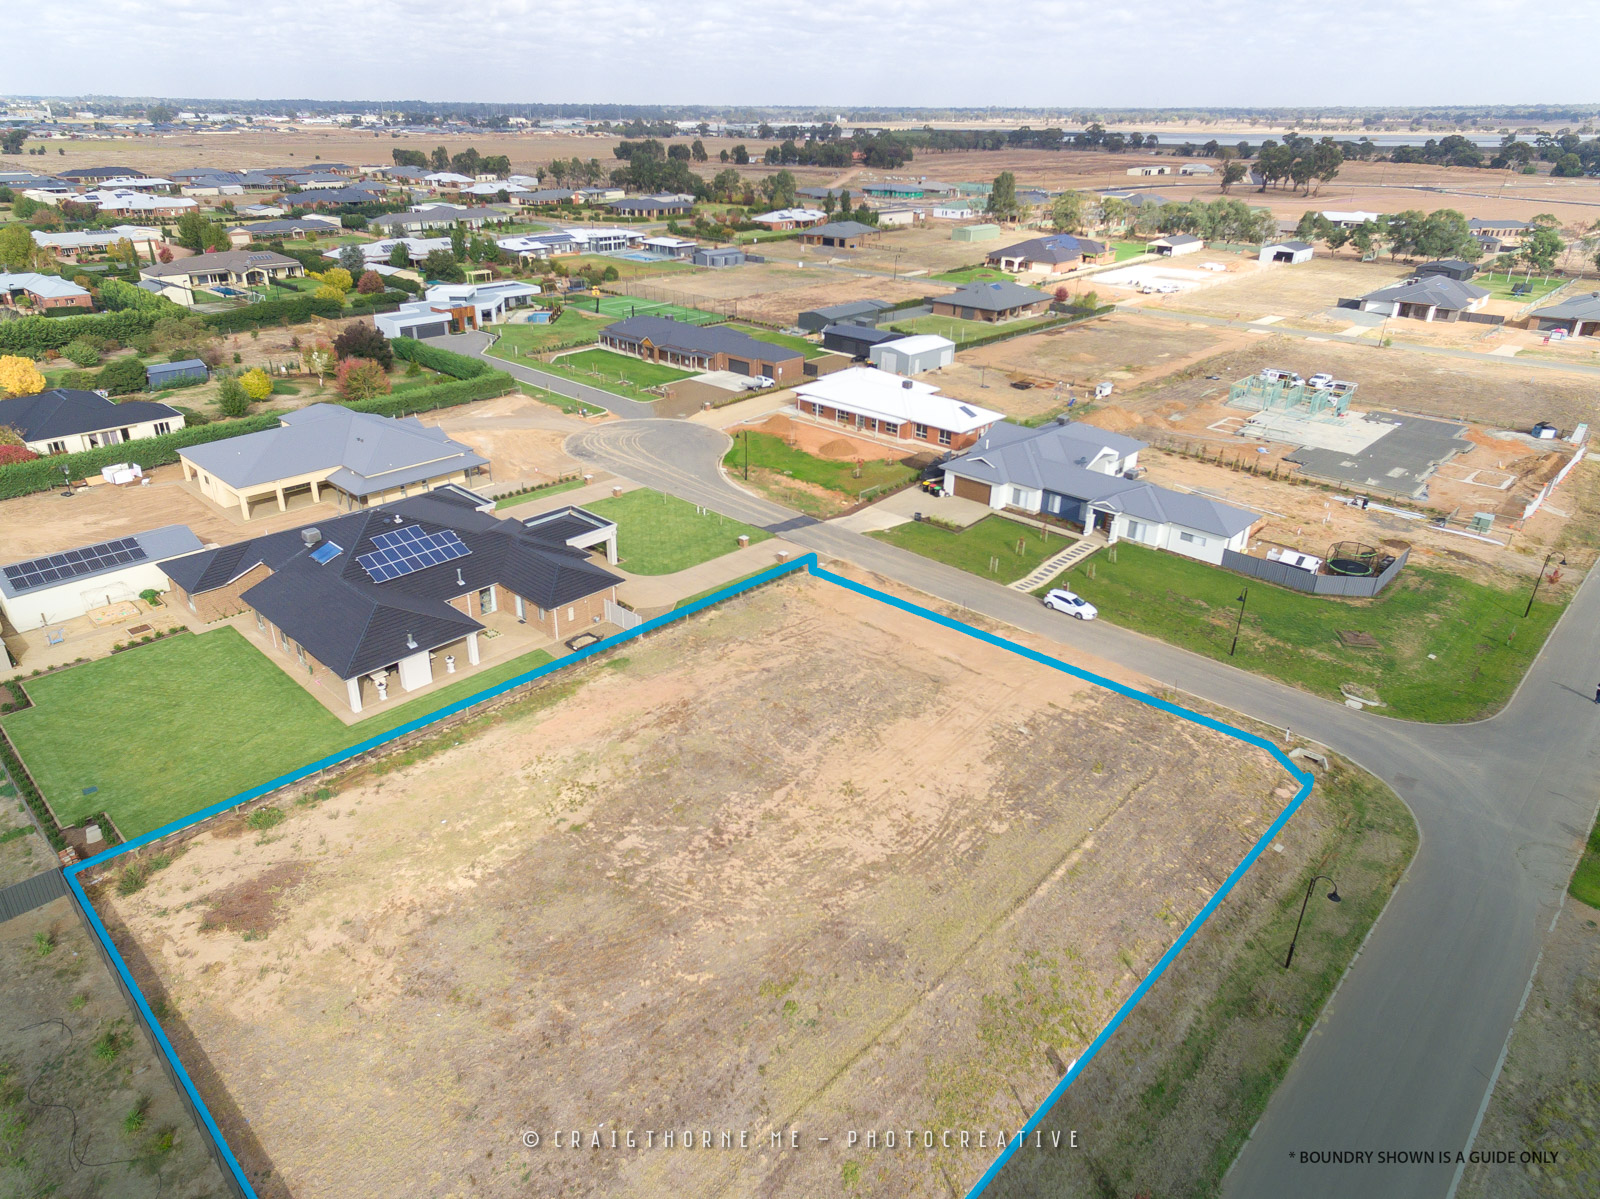 20180509-05-1-Girton-Crt-Shepparton-North-©CT-DJI_0533-BOUNDRY.jpg